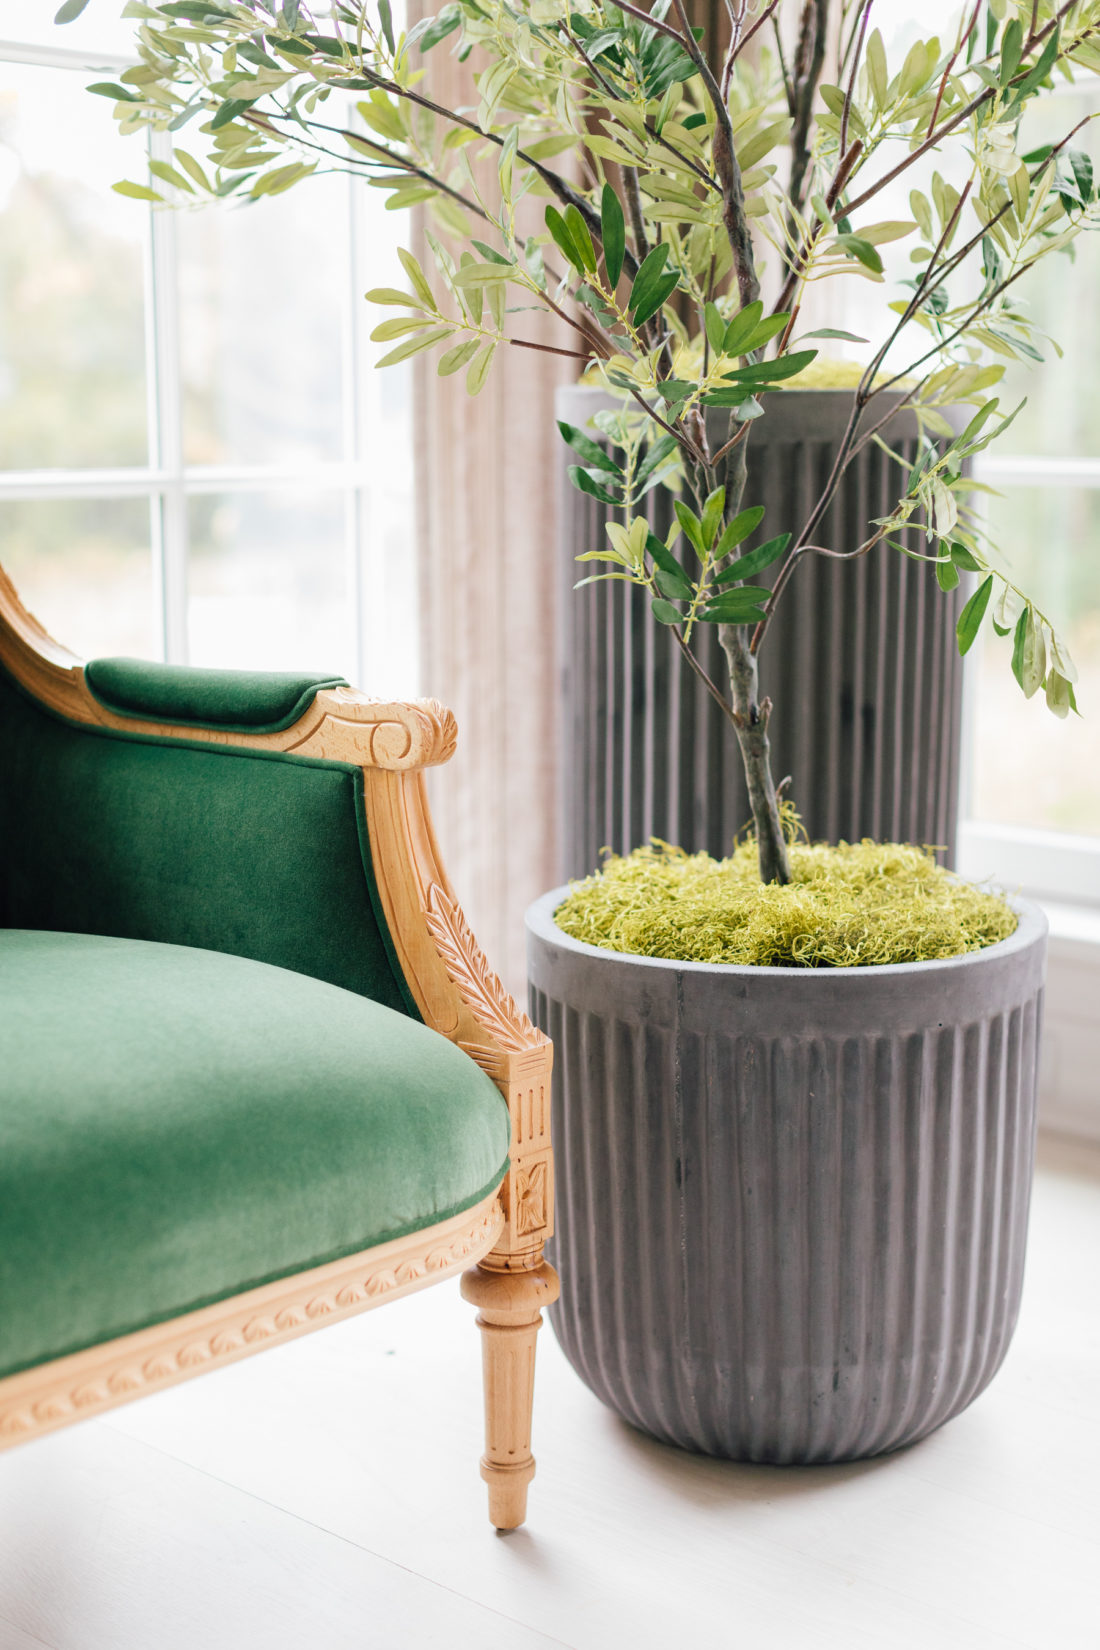 A closeup of the Taylor Burke settee and planters in Eva Amurri Martino's newly renovated Connecticut home